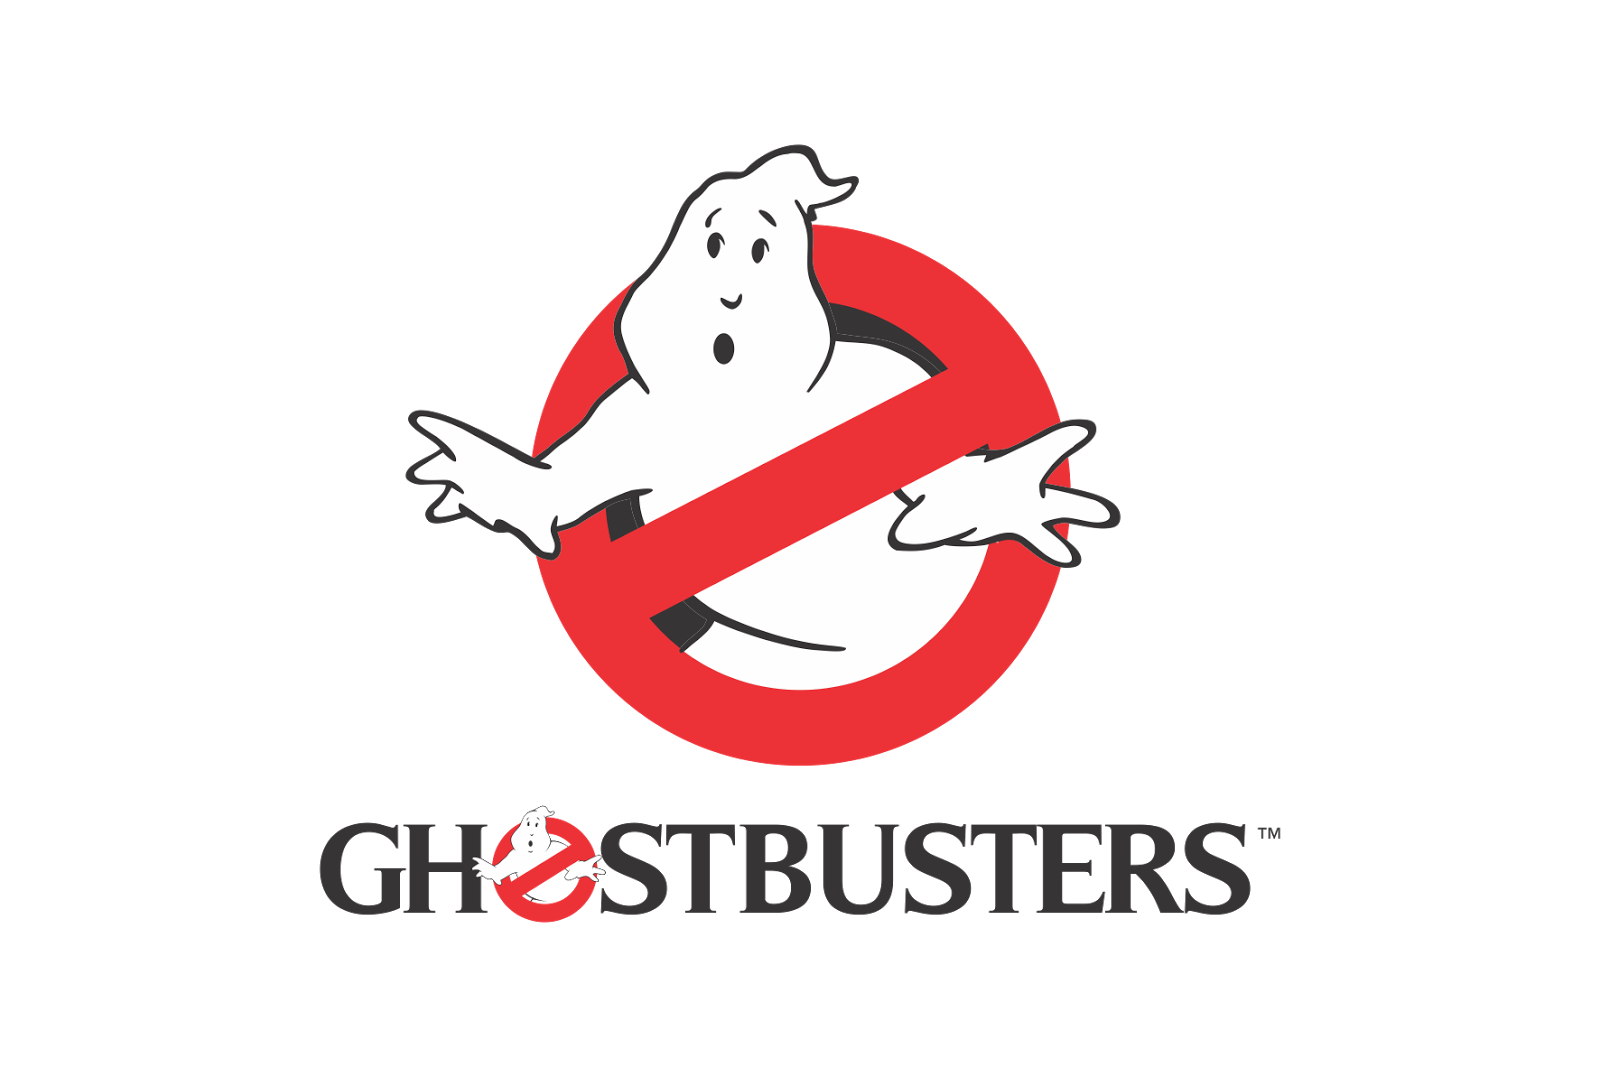 ghostbusters png logo symbol #3620